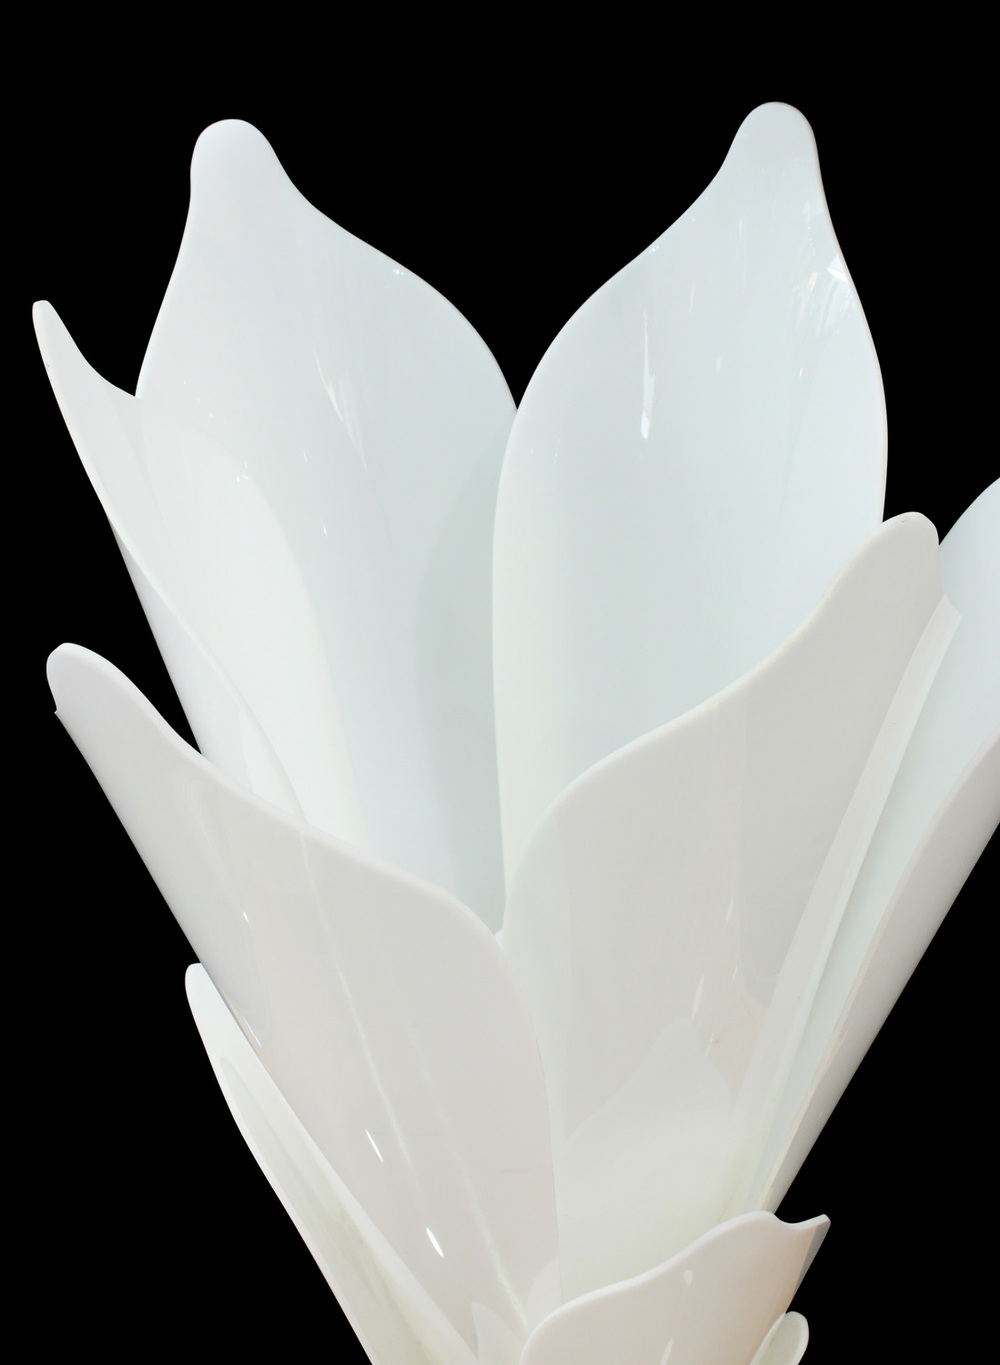 Rougier 30 white petals flower tablelamp220 detail4  hires.jpg